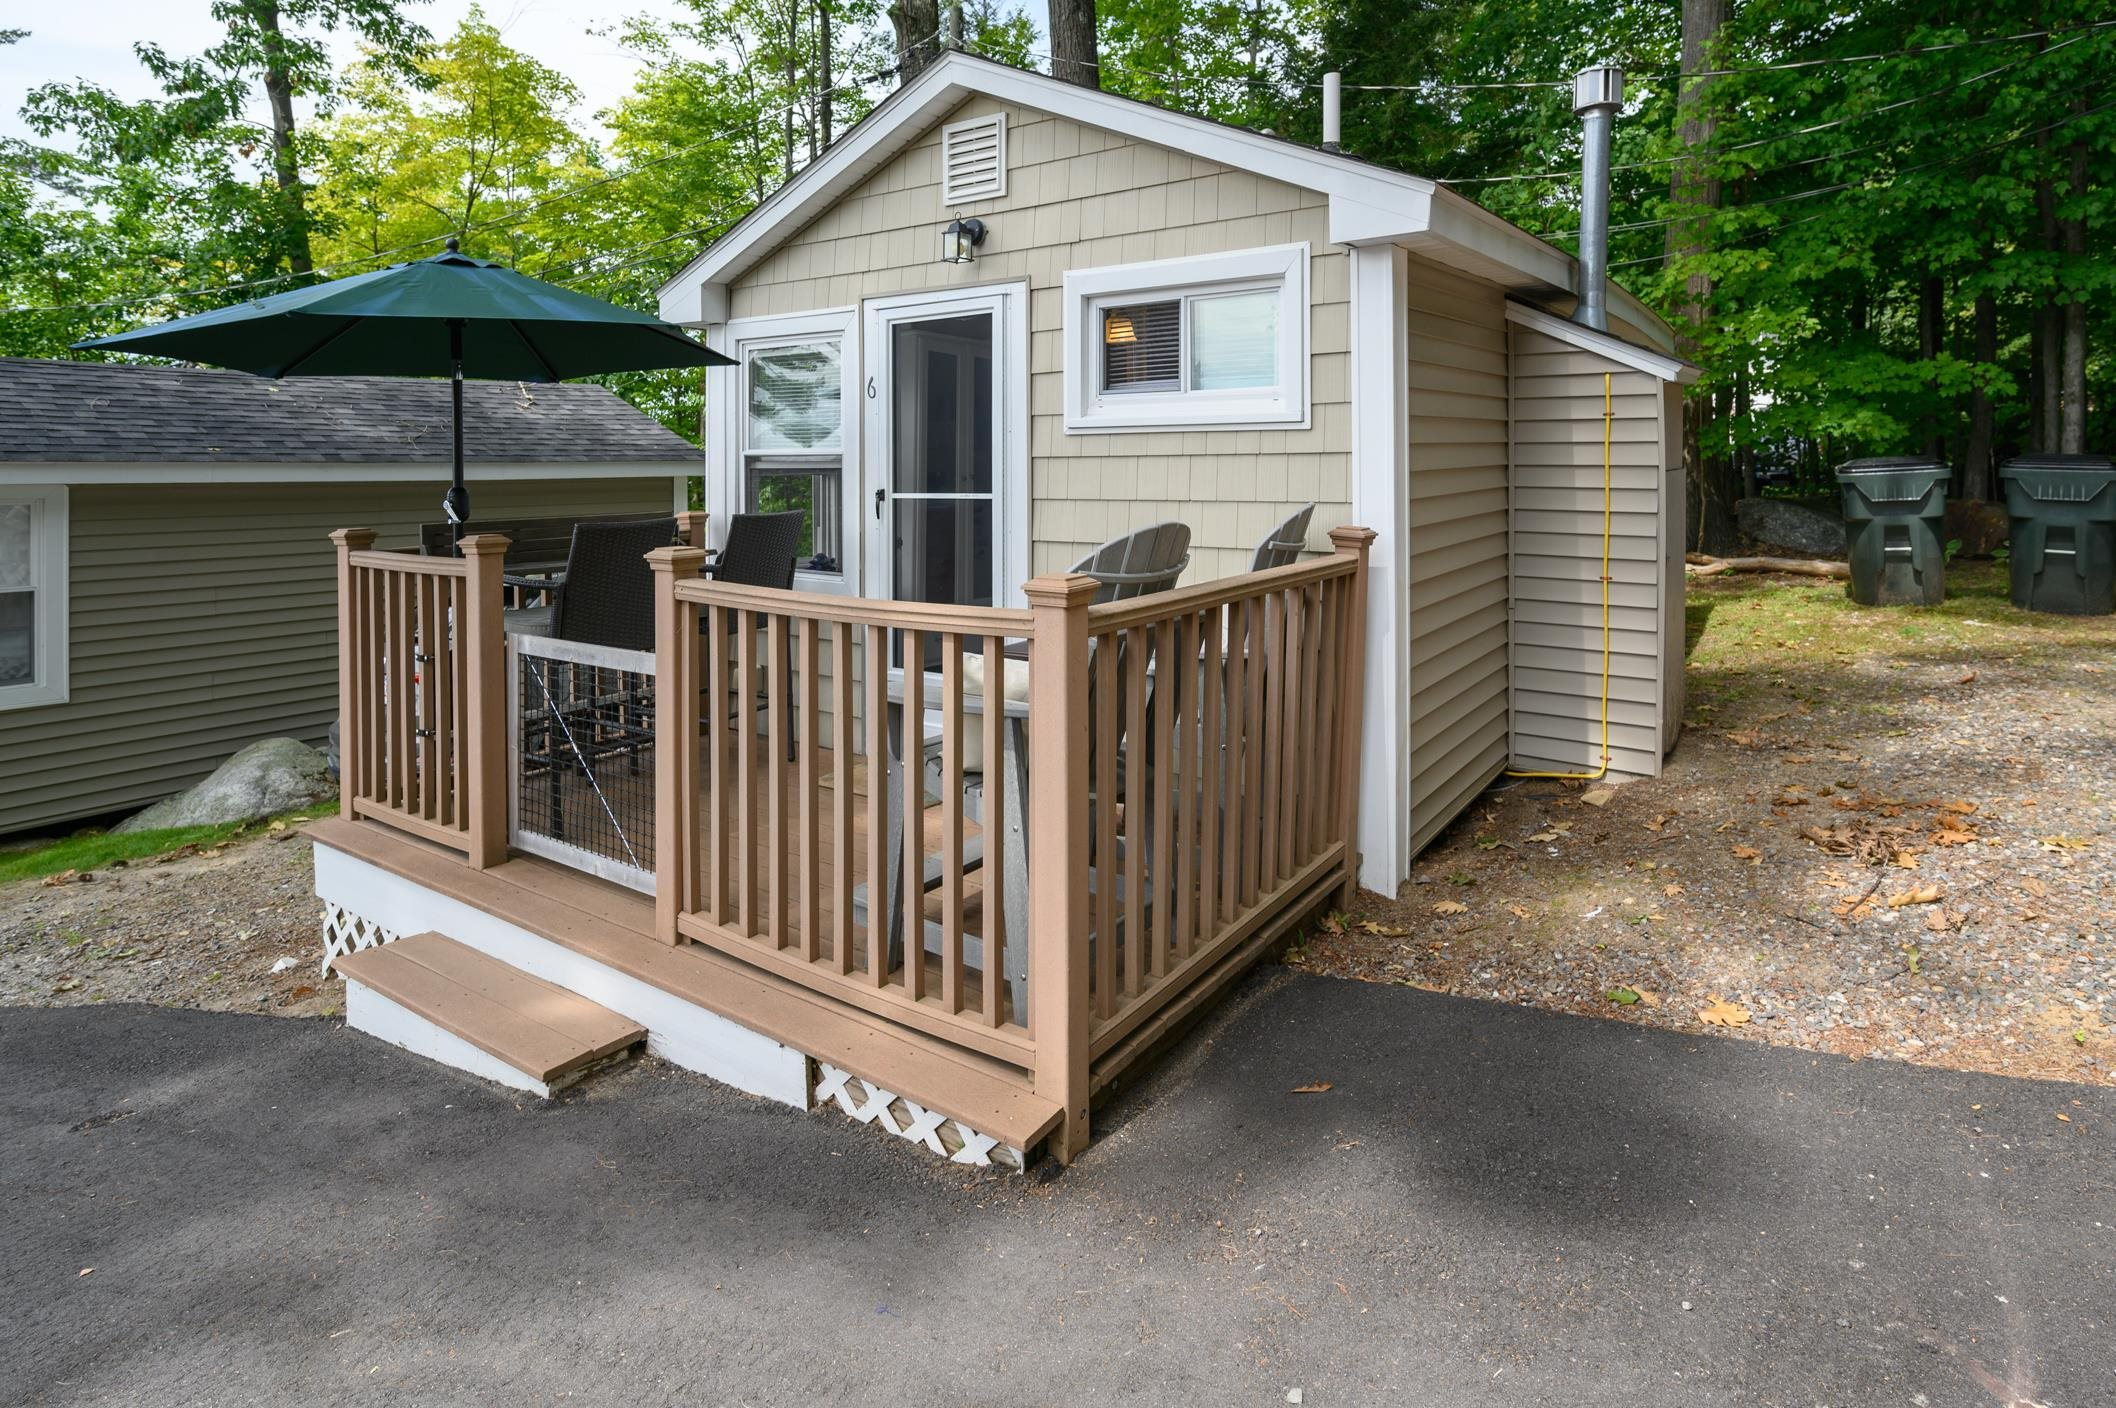 277 Weirs Boulevard 6, Laconia, NH 03246